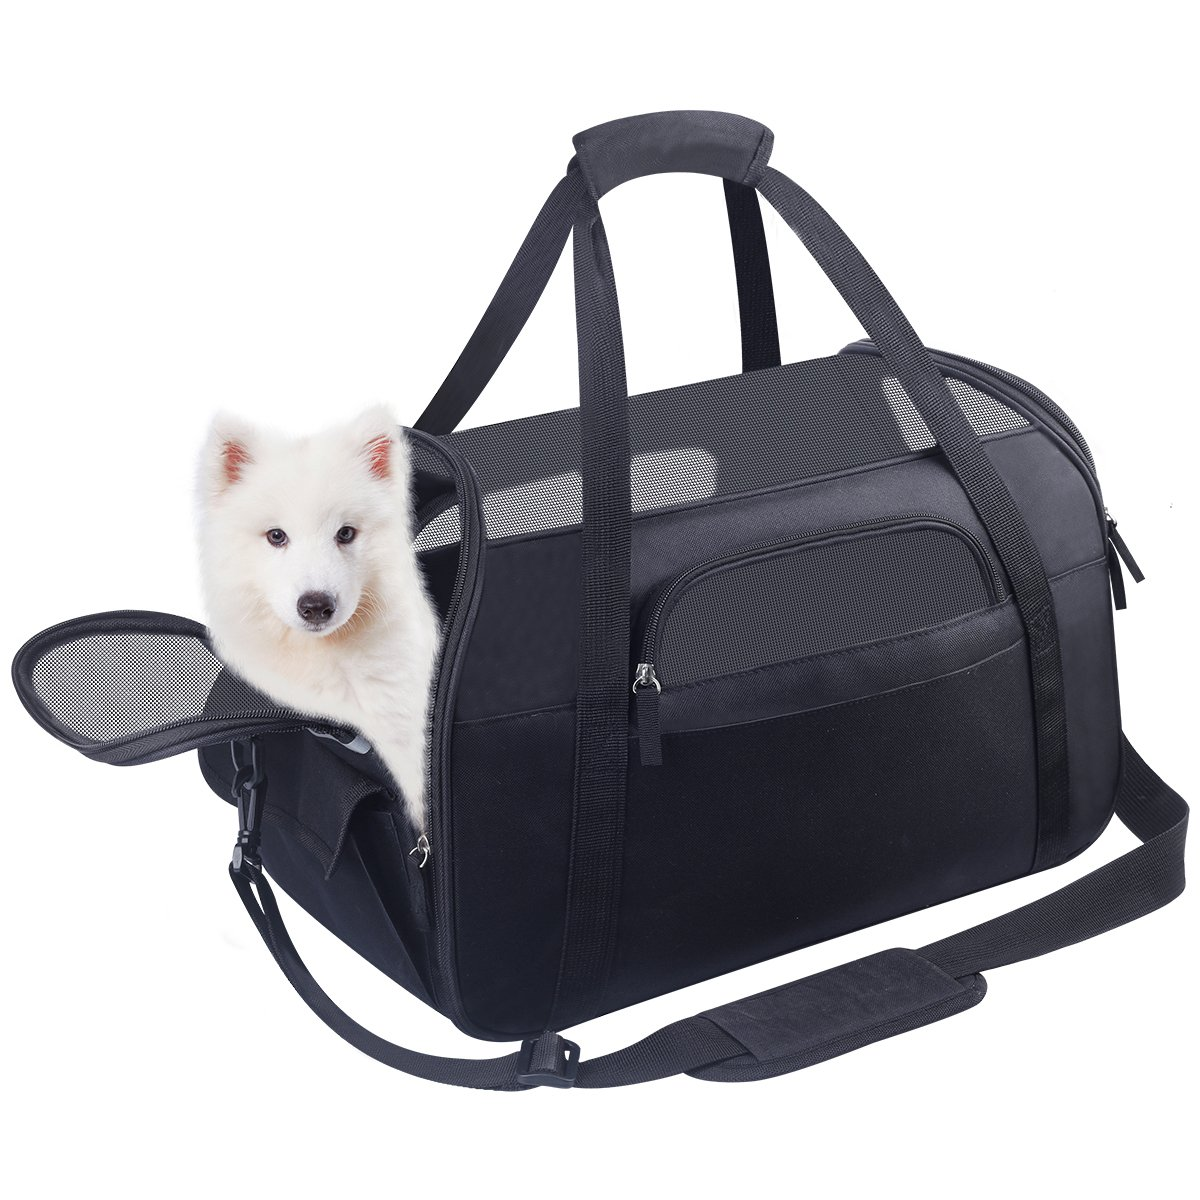 HACHI SHOP Pet Carrier Dog Airline Approved Soft-Sided Portable Travel Bag for Small Dogs Cats Puppies Kittens Rabbits